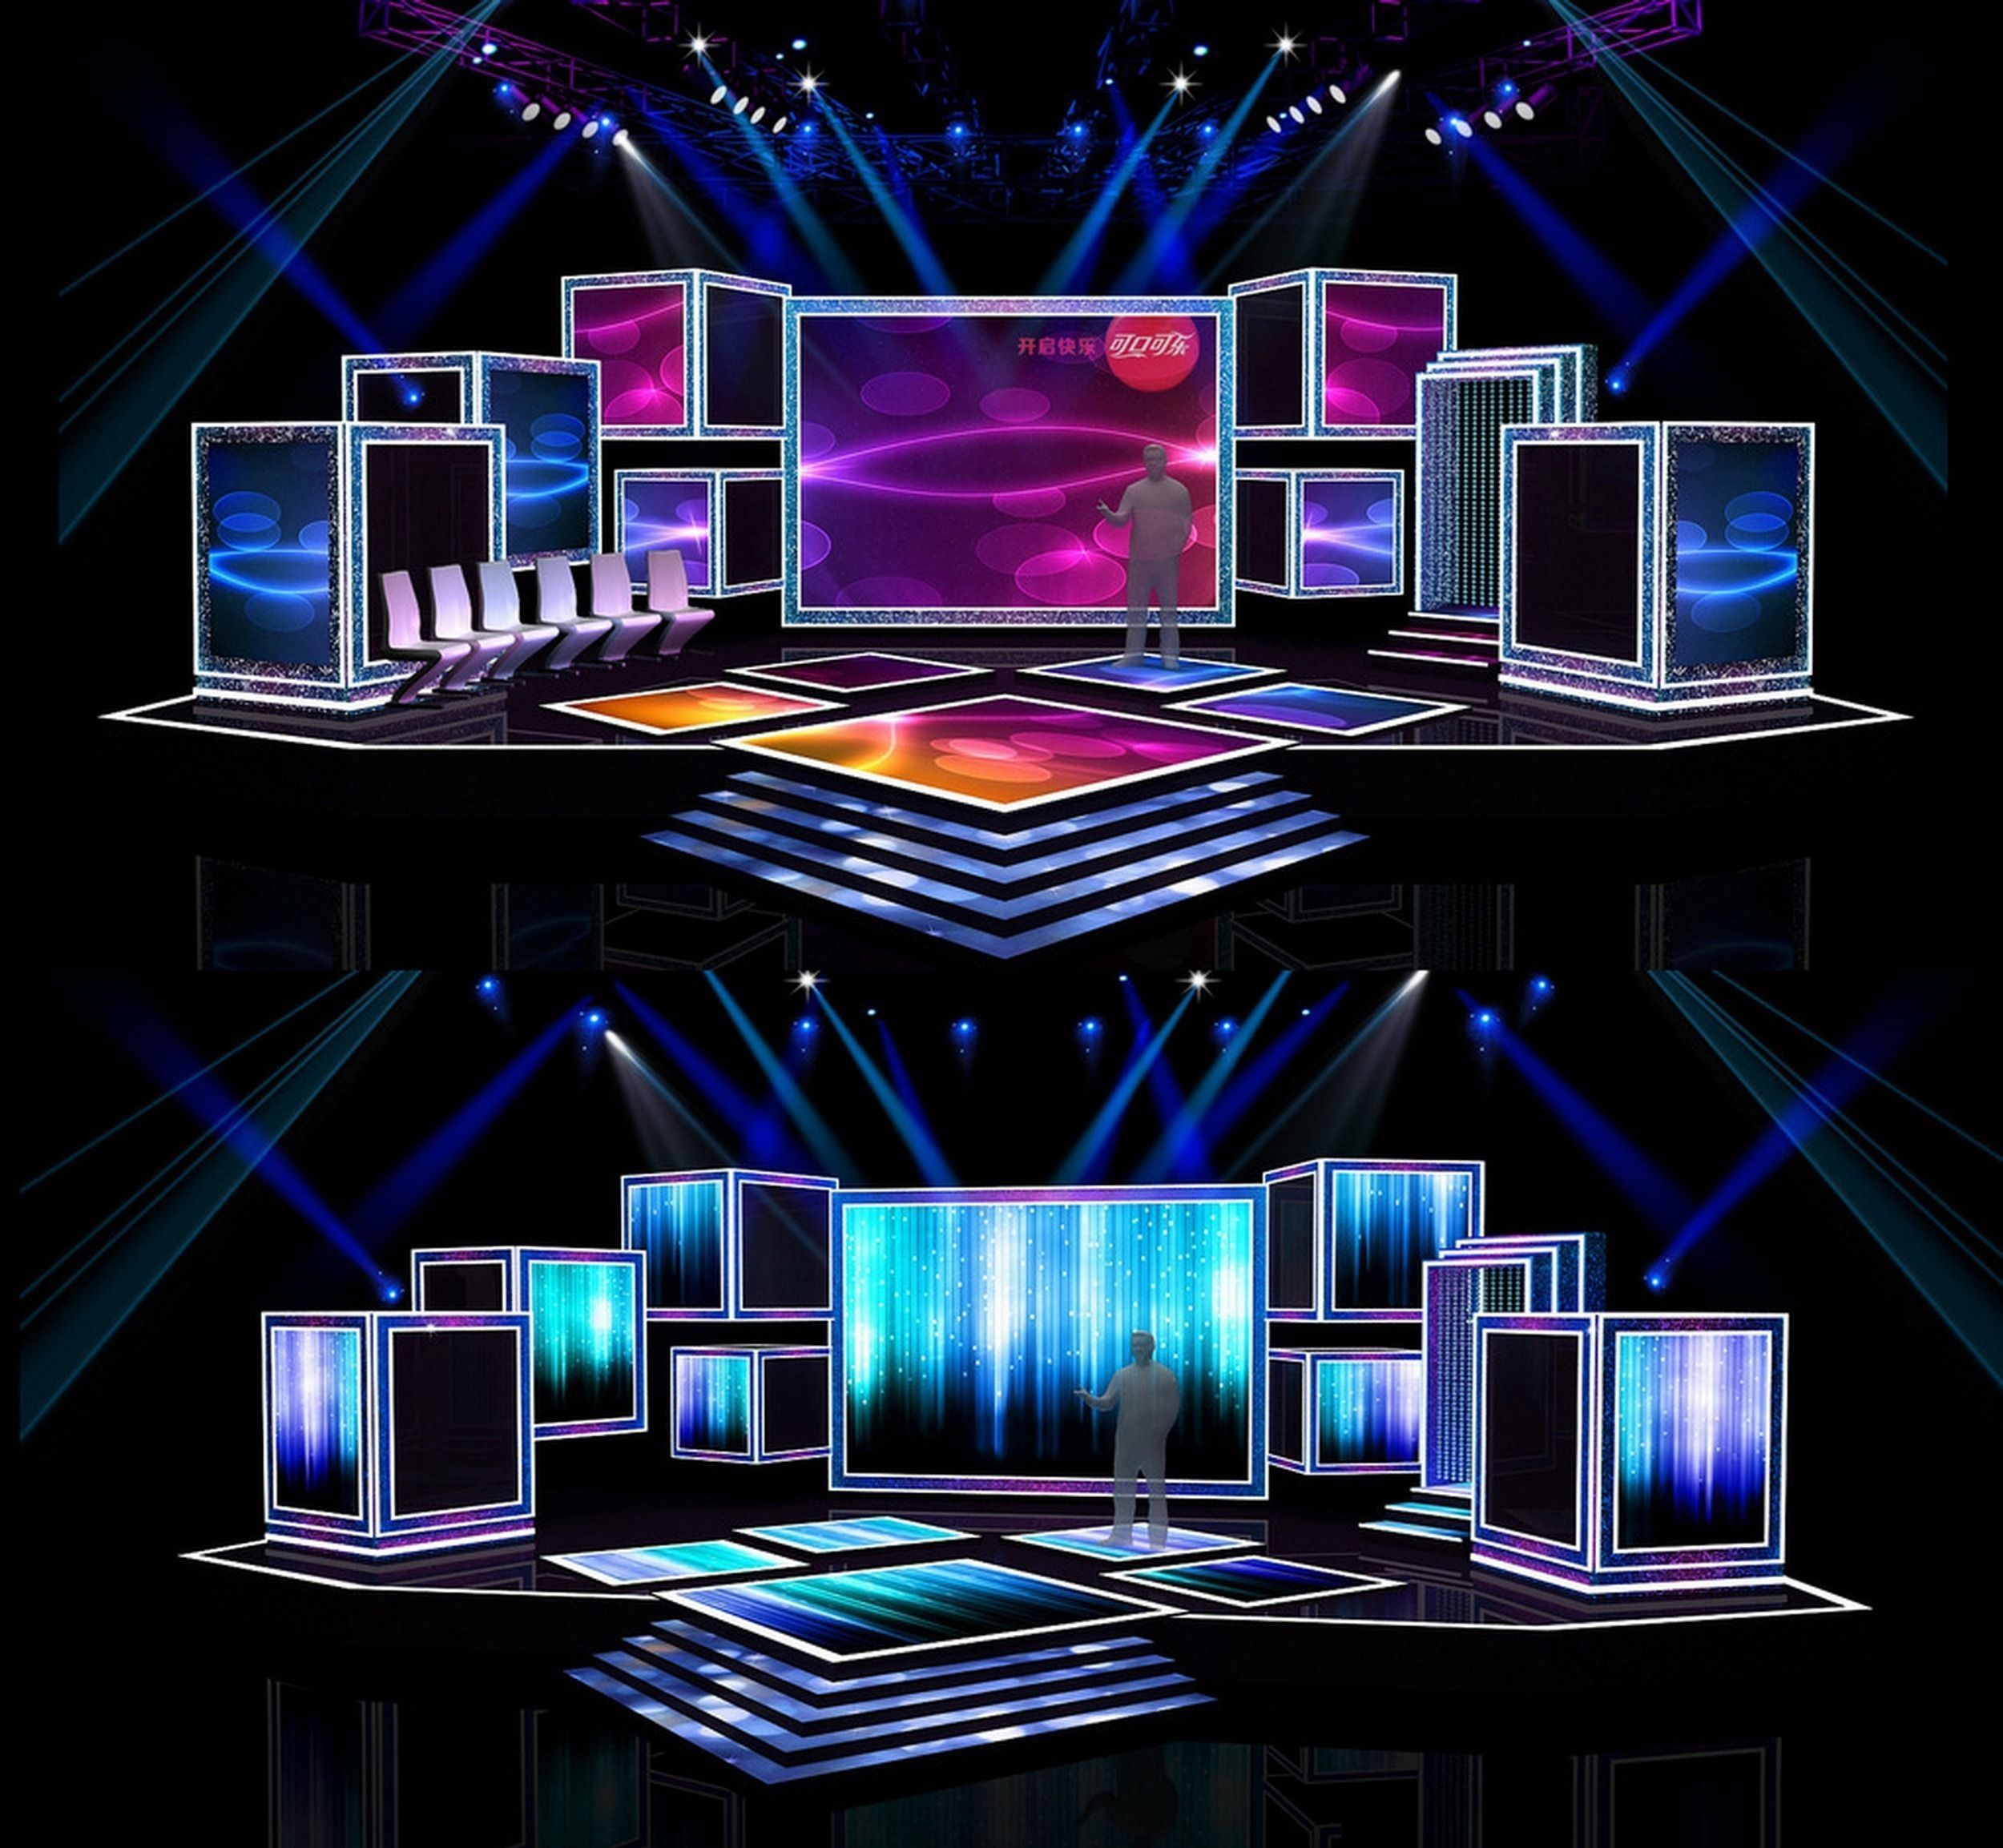 Download Concert Stage Design 7 Free 3D Model Or Browse 95833 Similar  Concert Stage 3D Models. Available In Max, Obj, Fbx, 3ds And Other Formats.